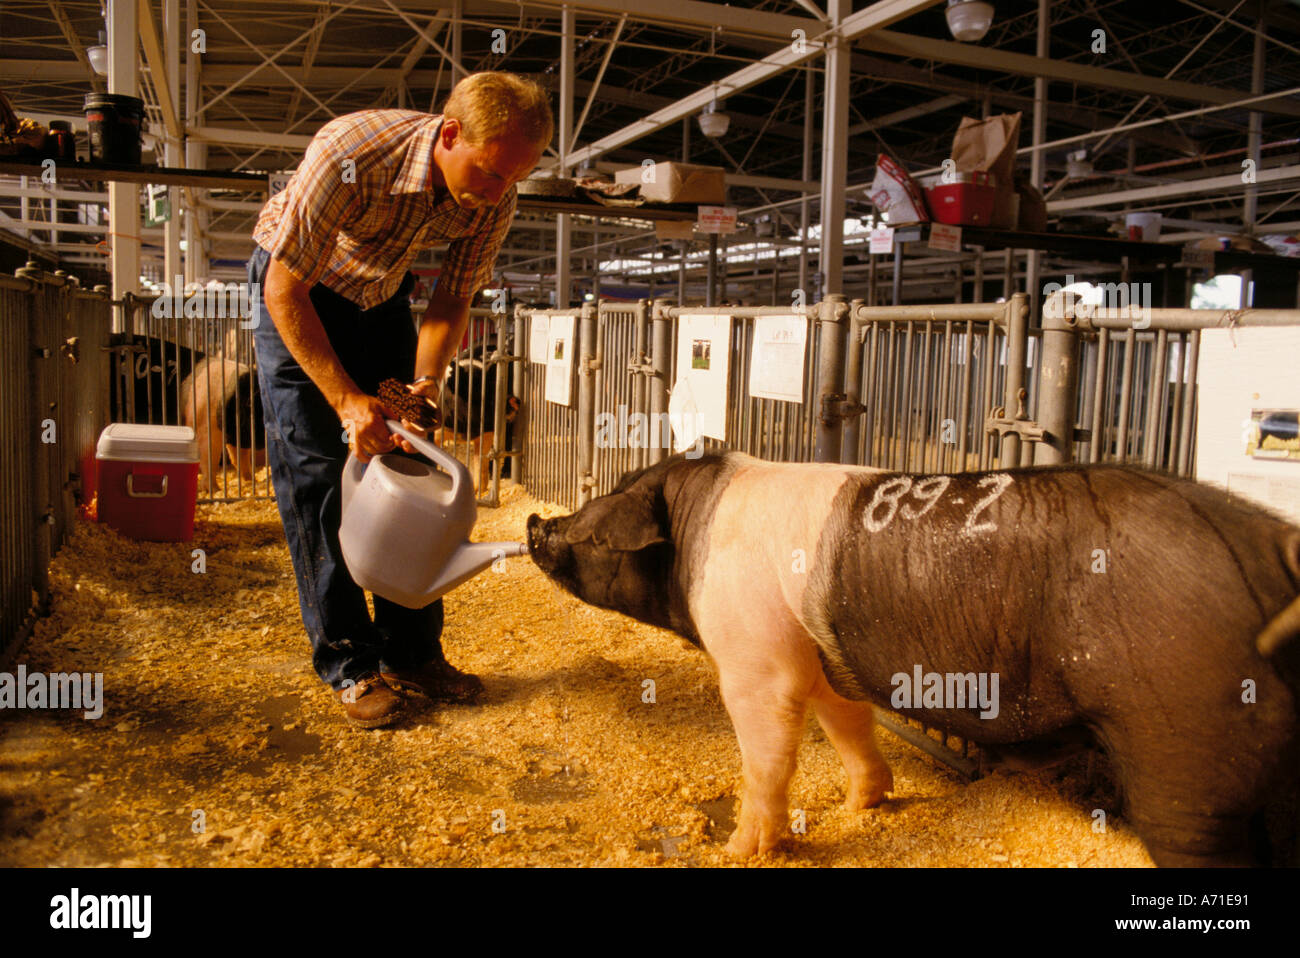 Man providing water to a large numbered pig at the Illinois State Fair in Springfield IL - Stock Image